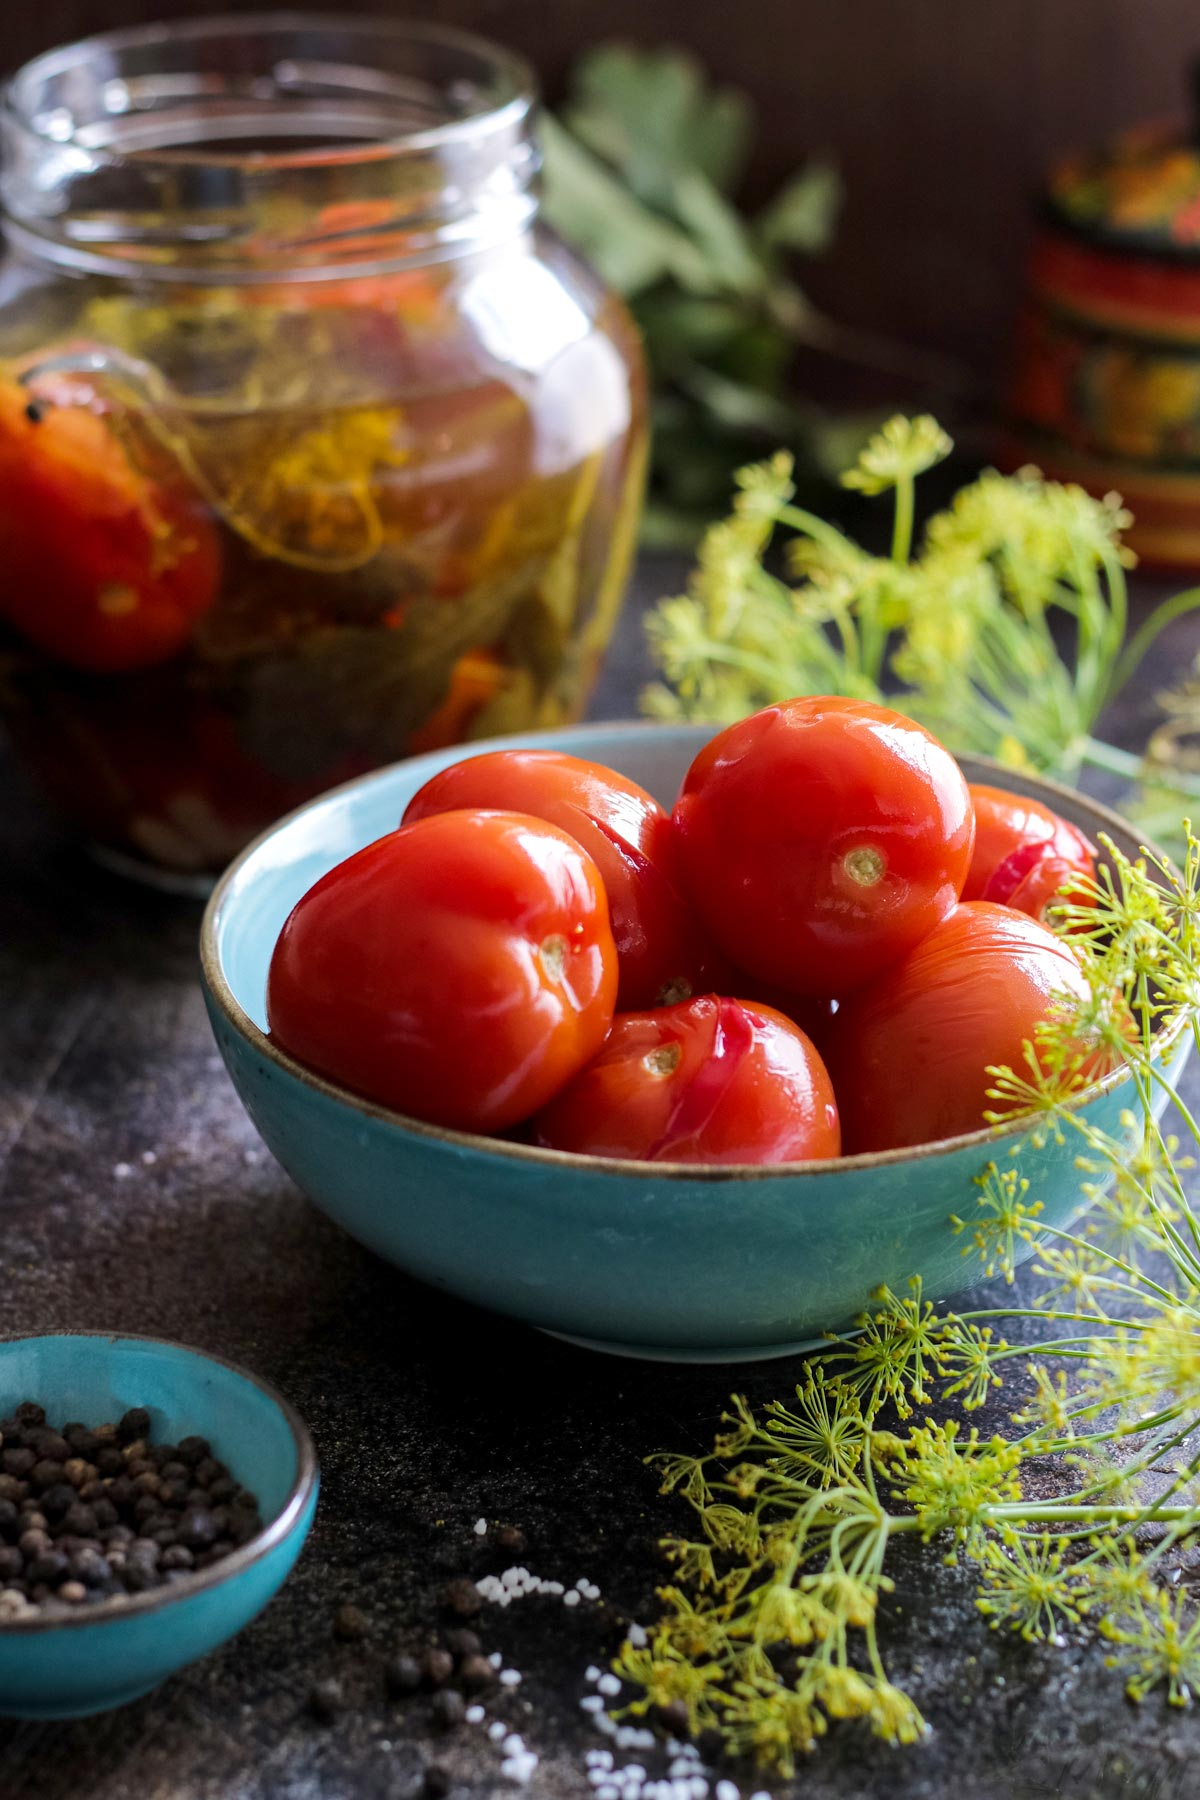 Pickled tomatoes in a bowl next to a jar.